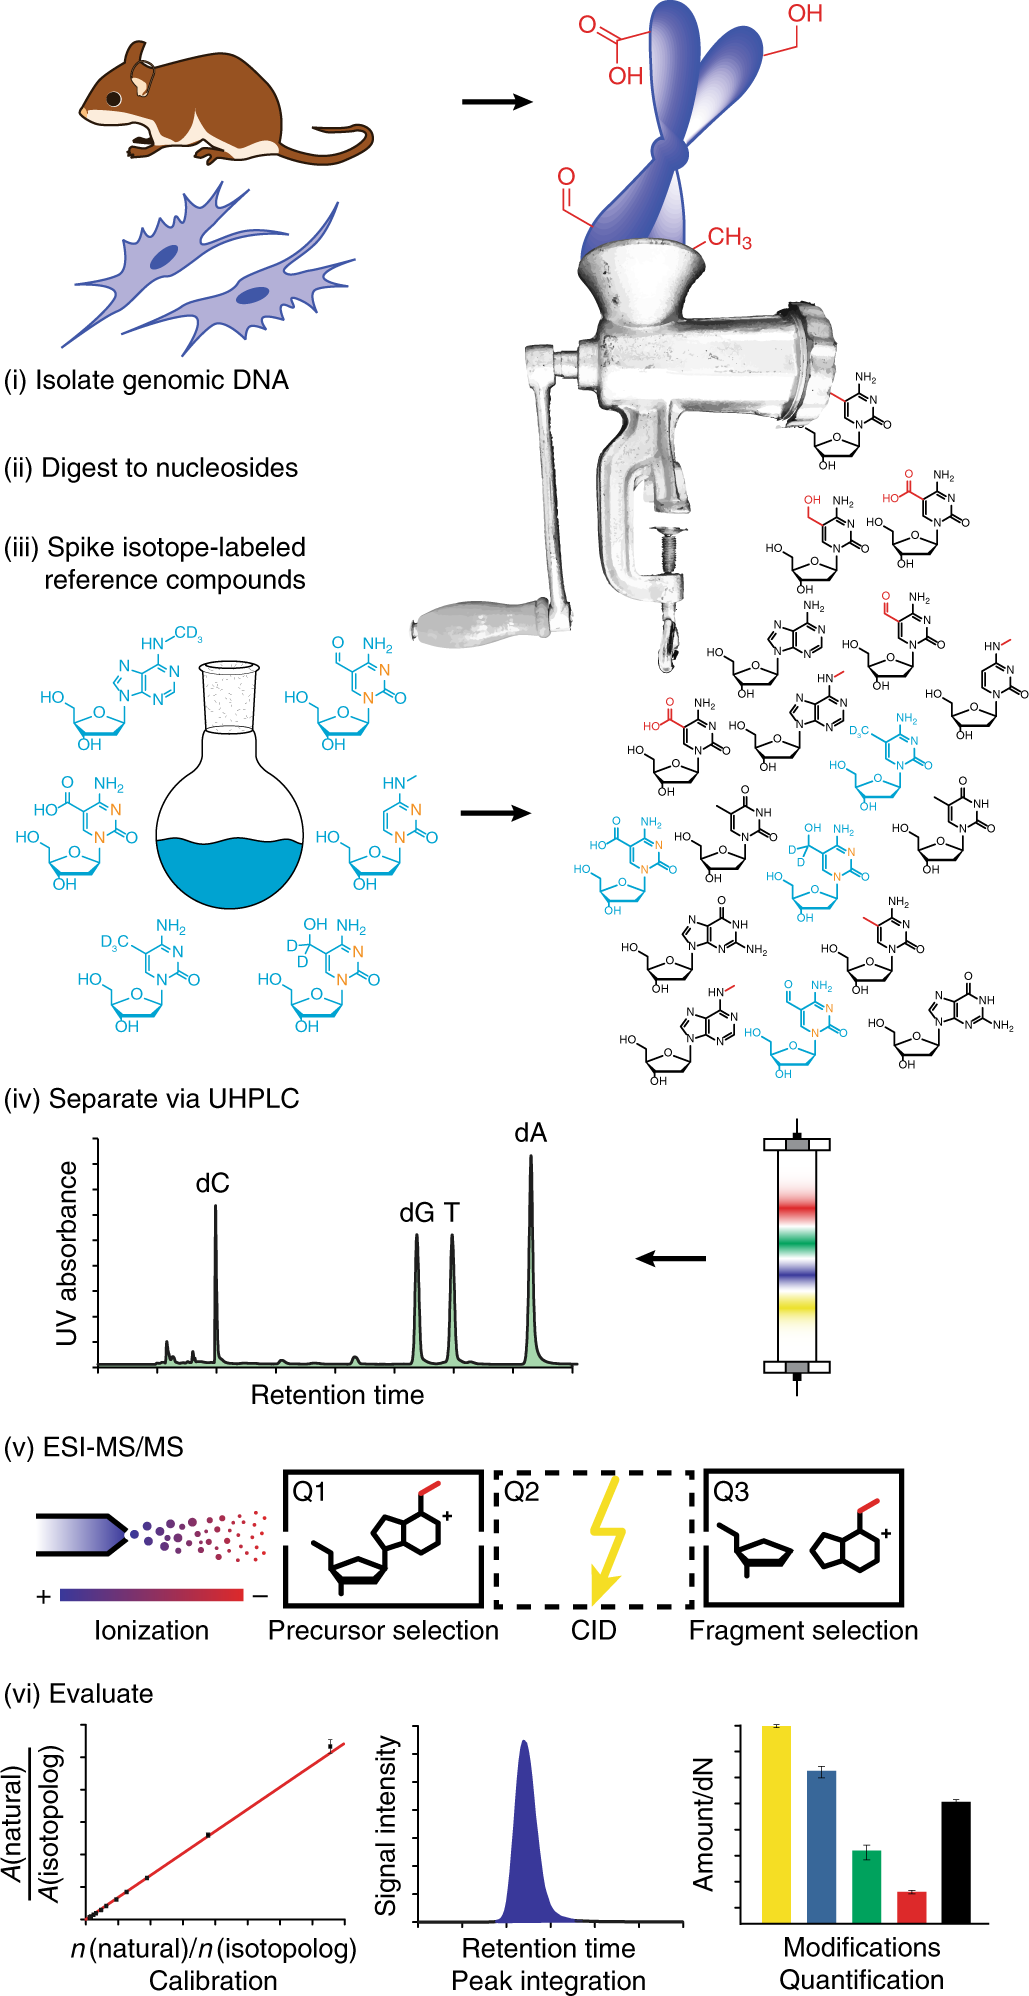 Isotope-dilution mass spectrometry for exact quantification